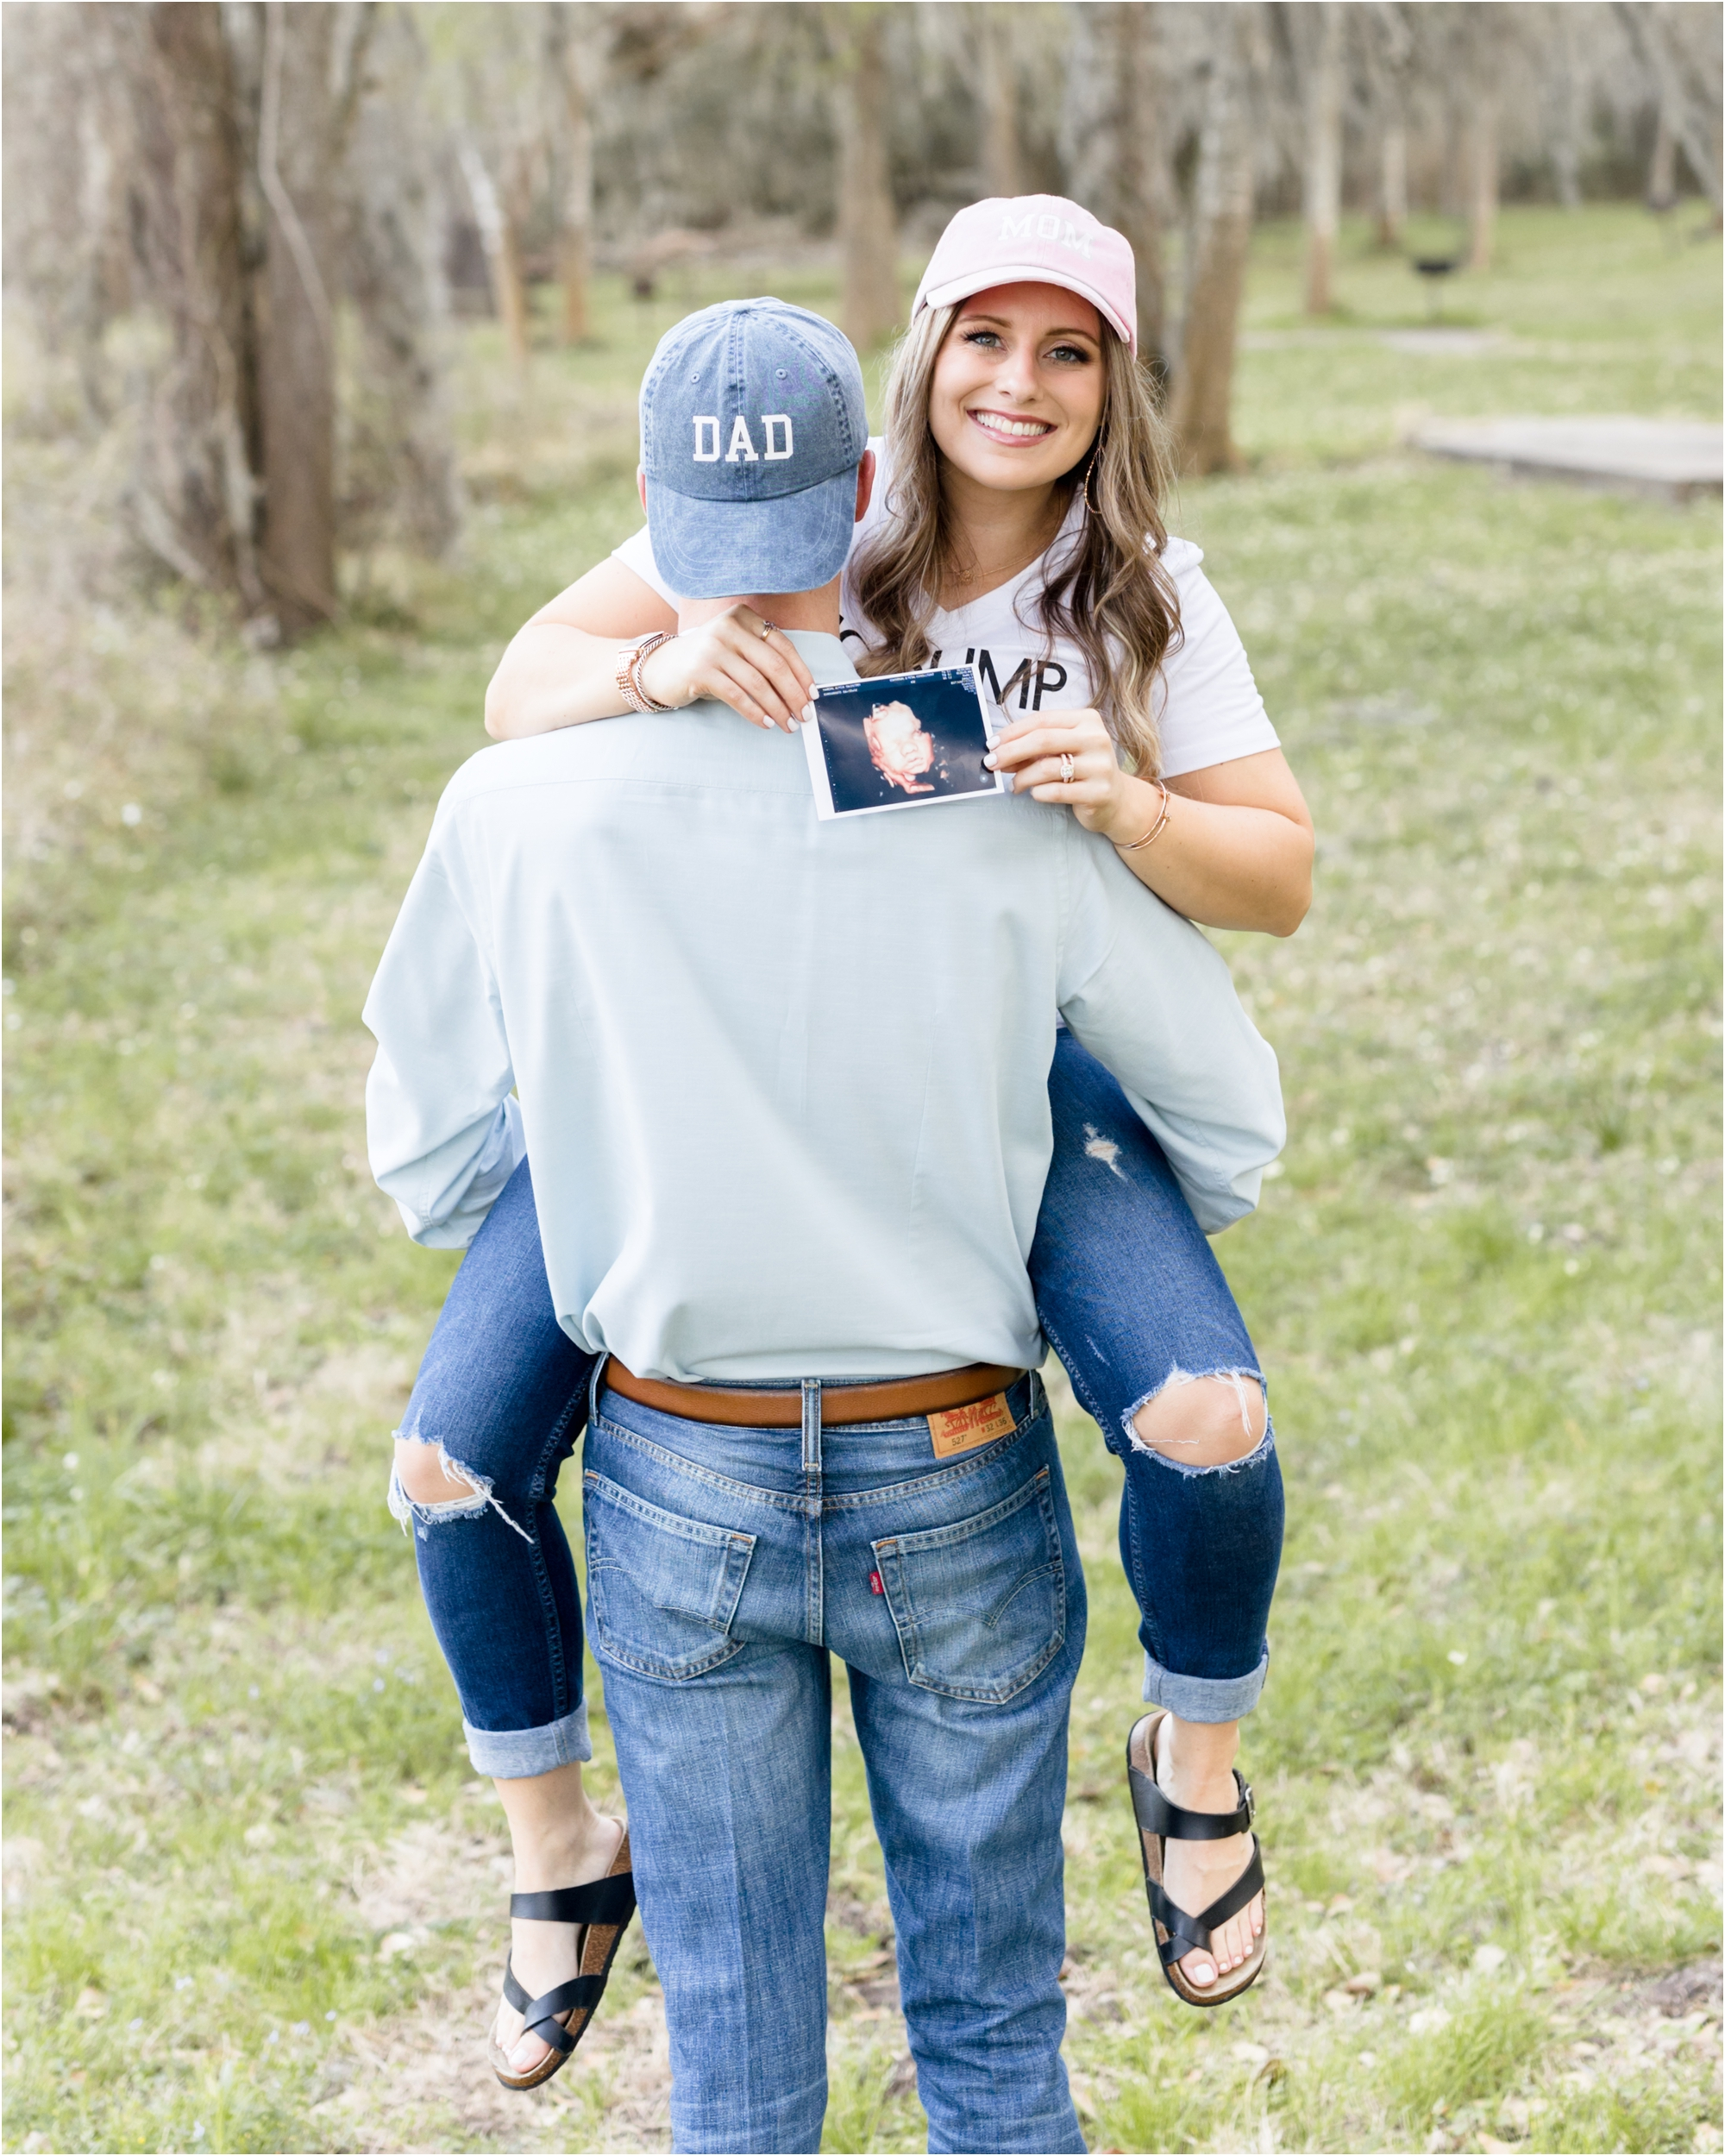 Sweet pregnancy announcement with Mom and Dad baseball caps. Photo by Lifetime of Clicks Photography.